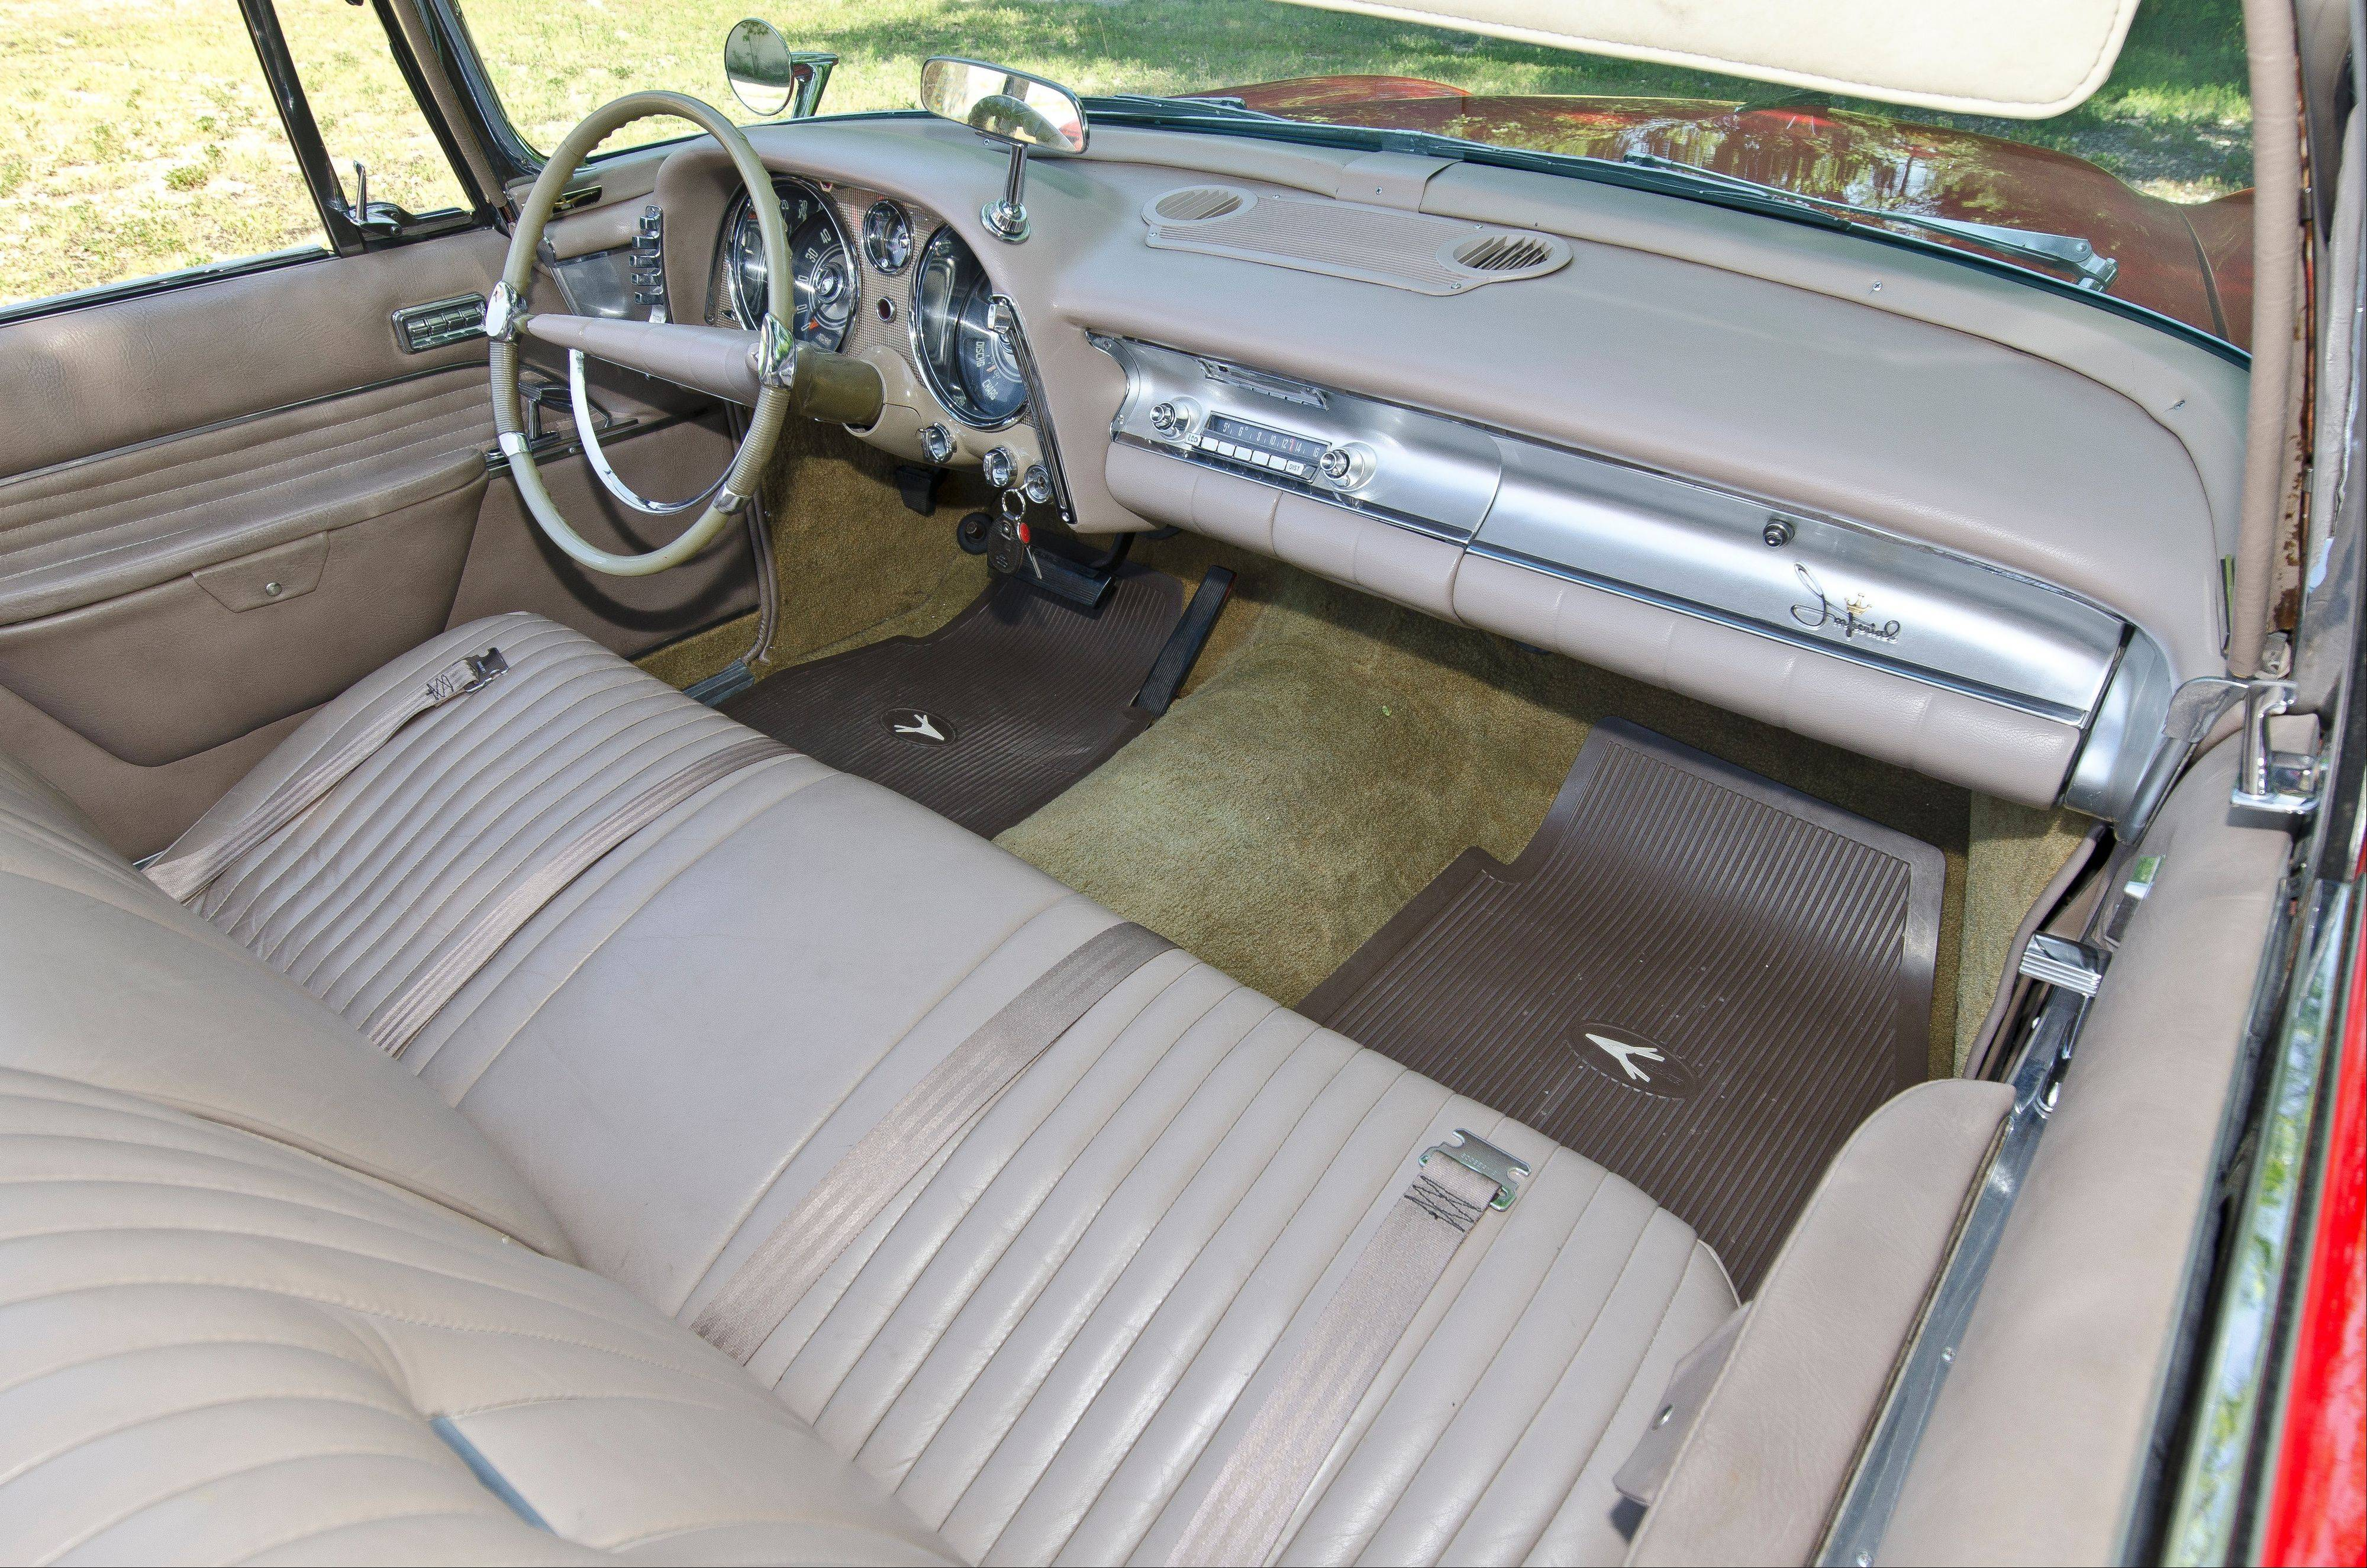 Only 600 convertible Imperial Crown's rolled off the assembly line in 1958, each with a dash-mounted rearview mirror.